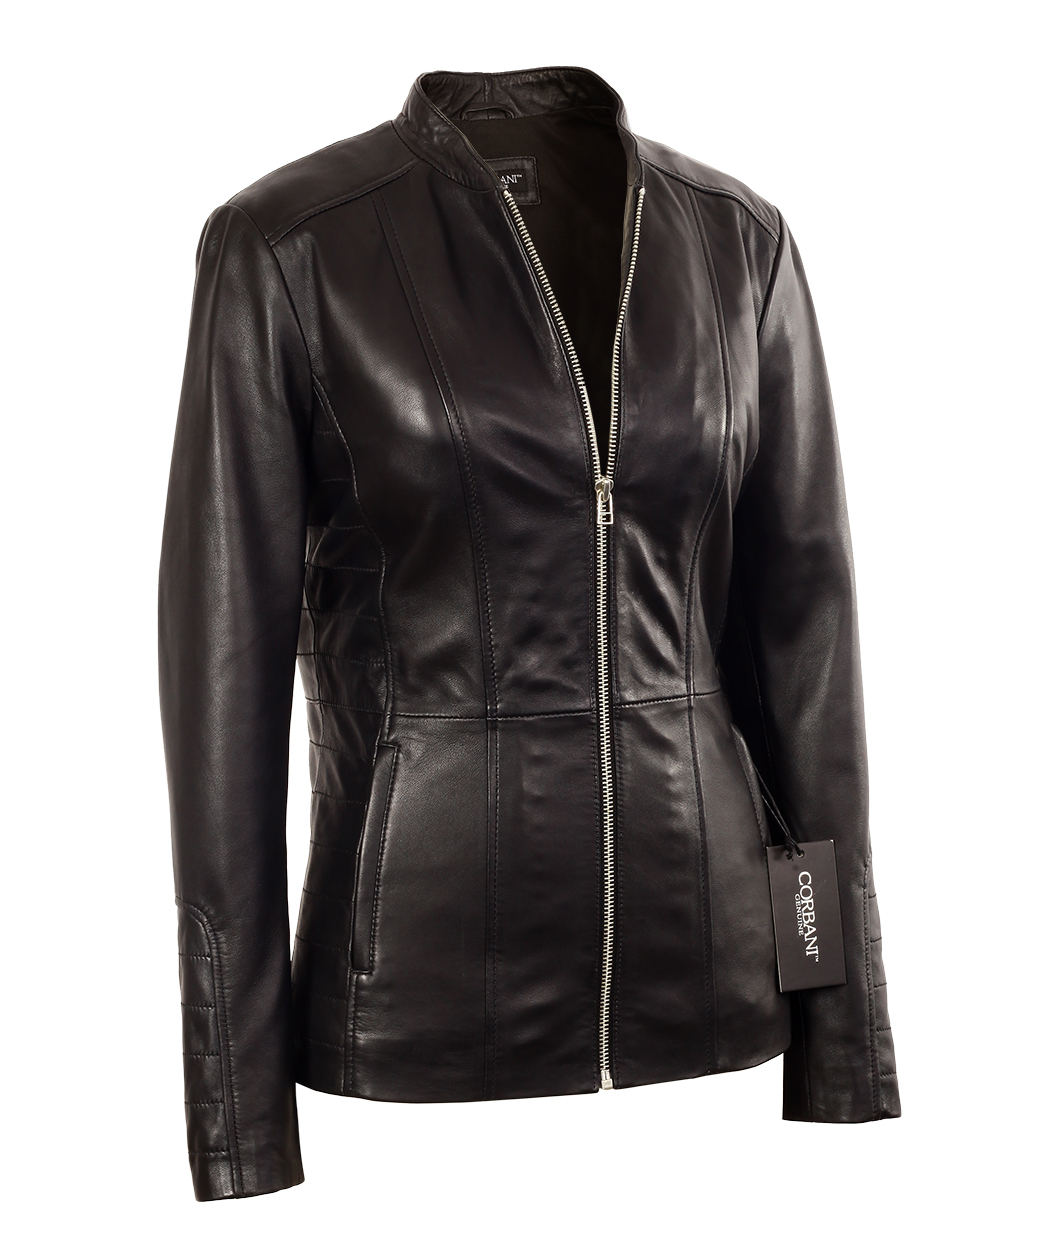 Real leather jackets for women